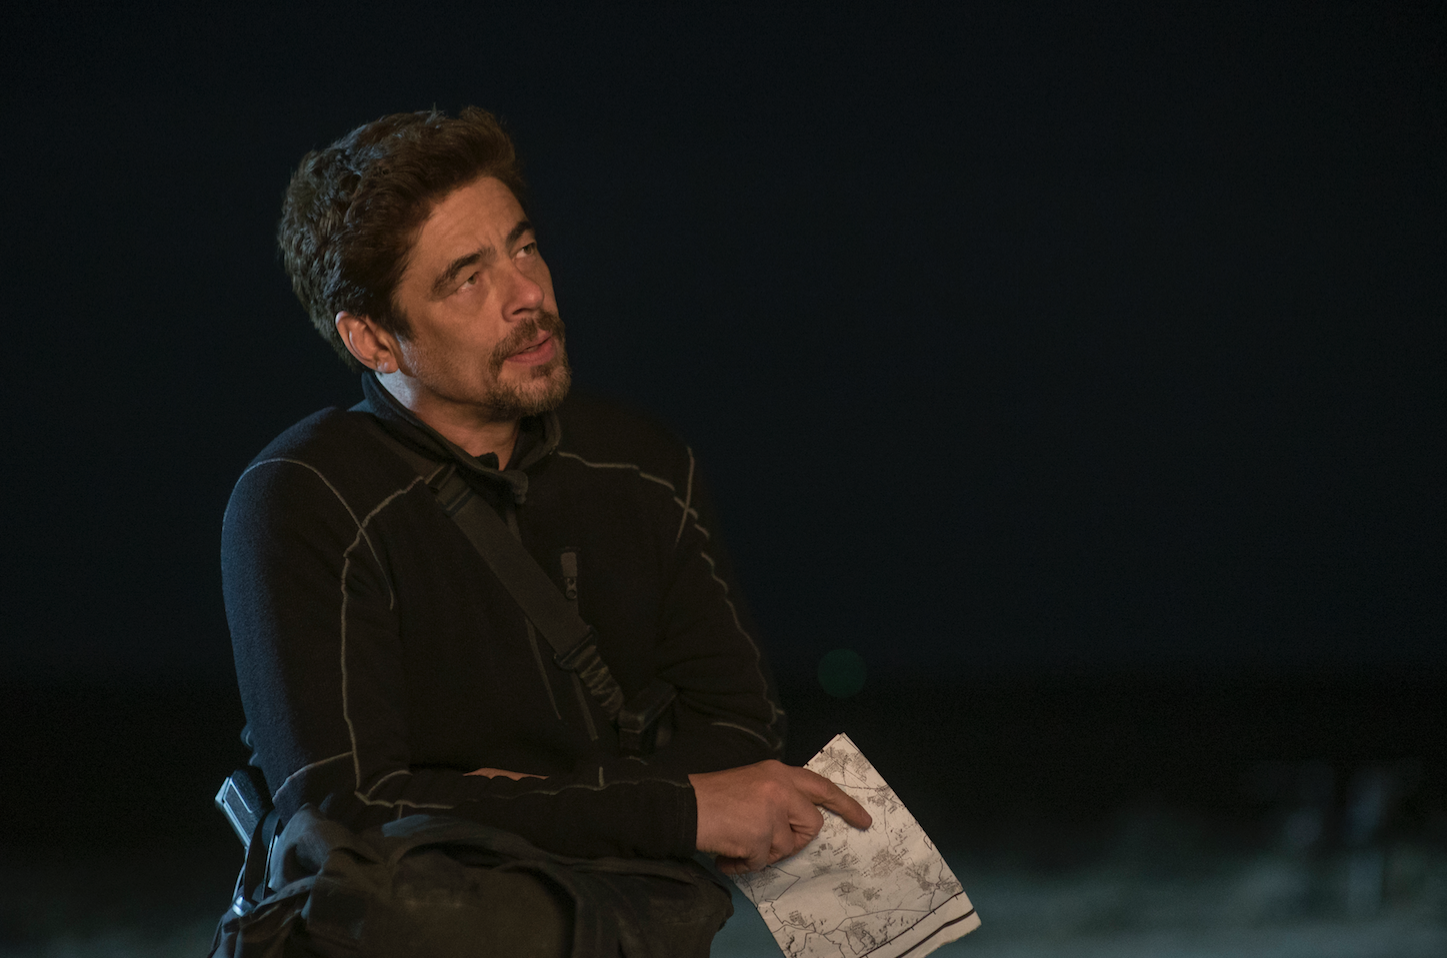 The Trailers for 'Sicario 2' and 'Gringo' Exemplify Lazy Filmmaking About Drug Cartels in Mexico